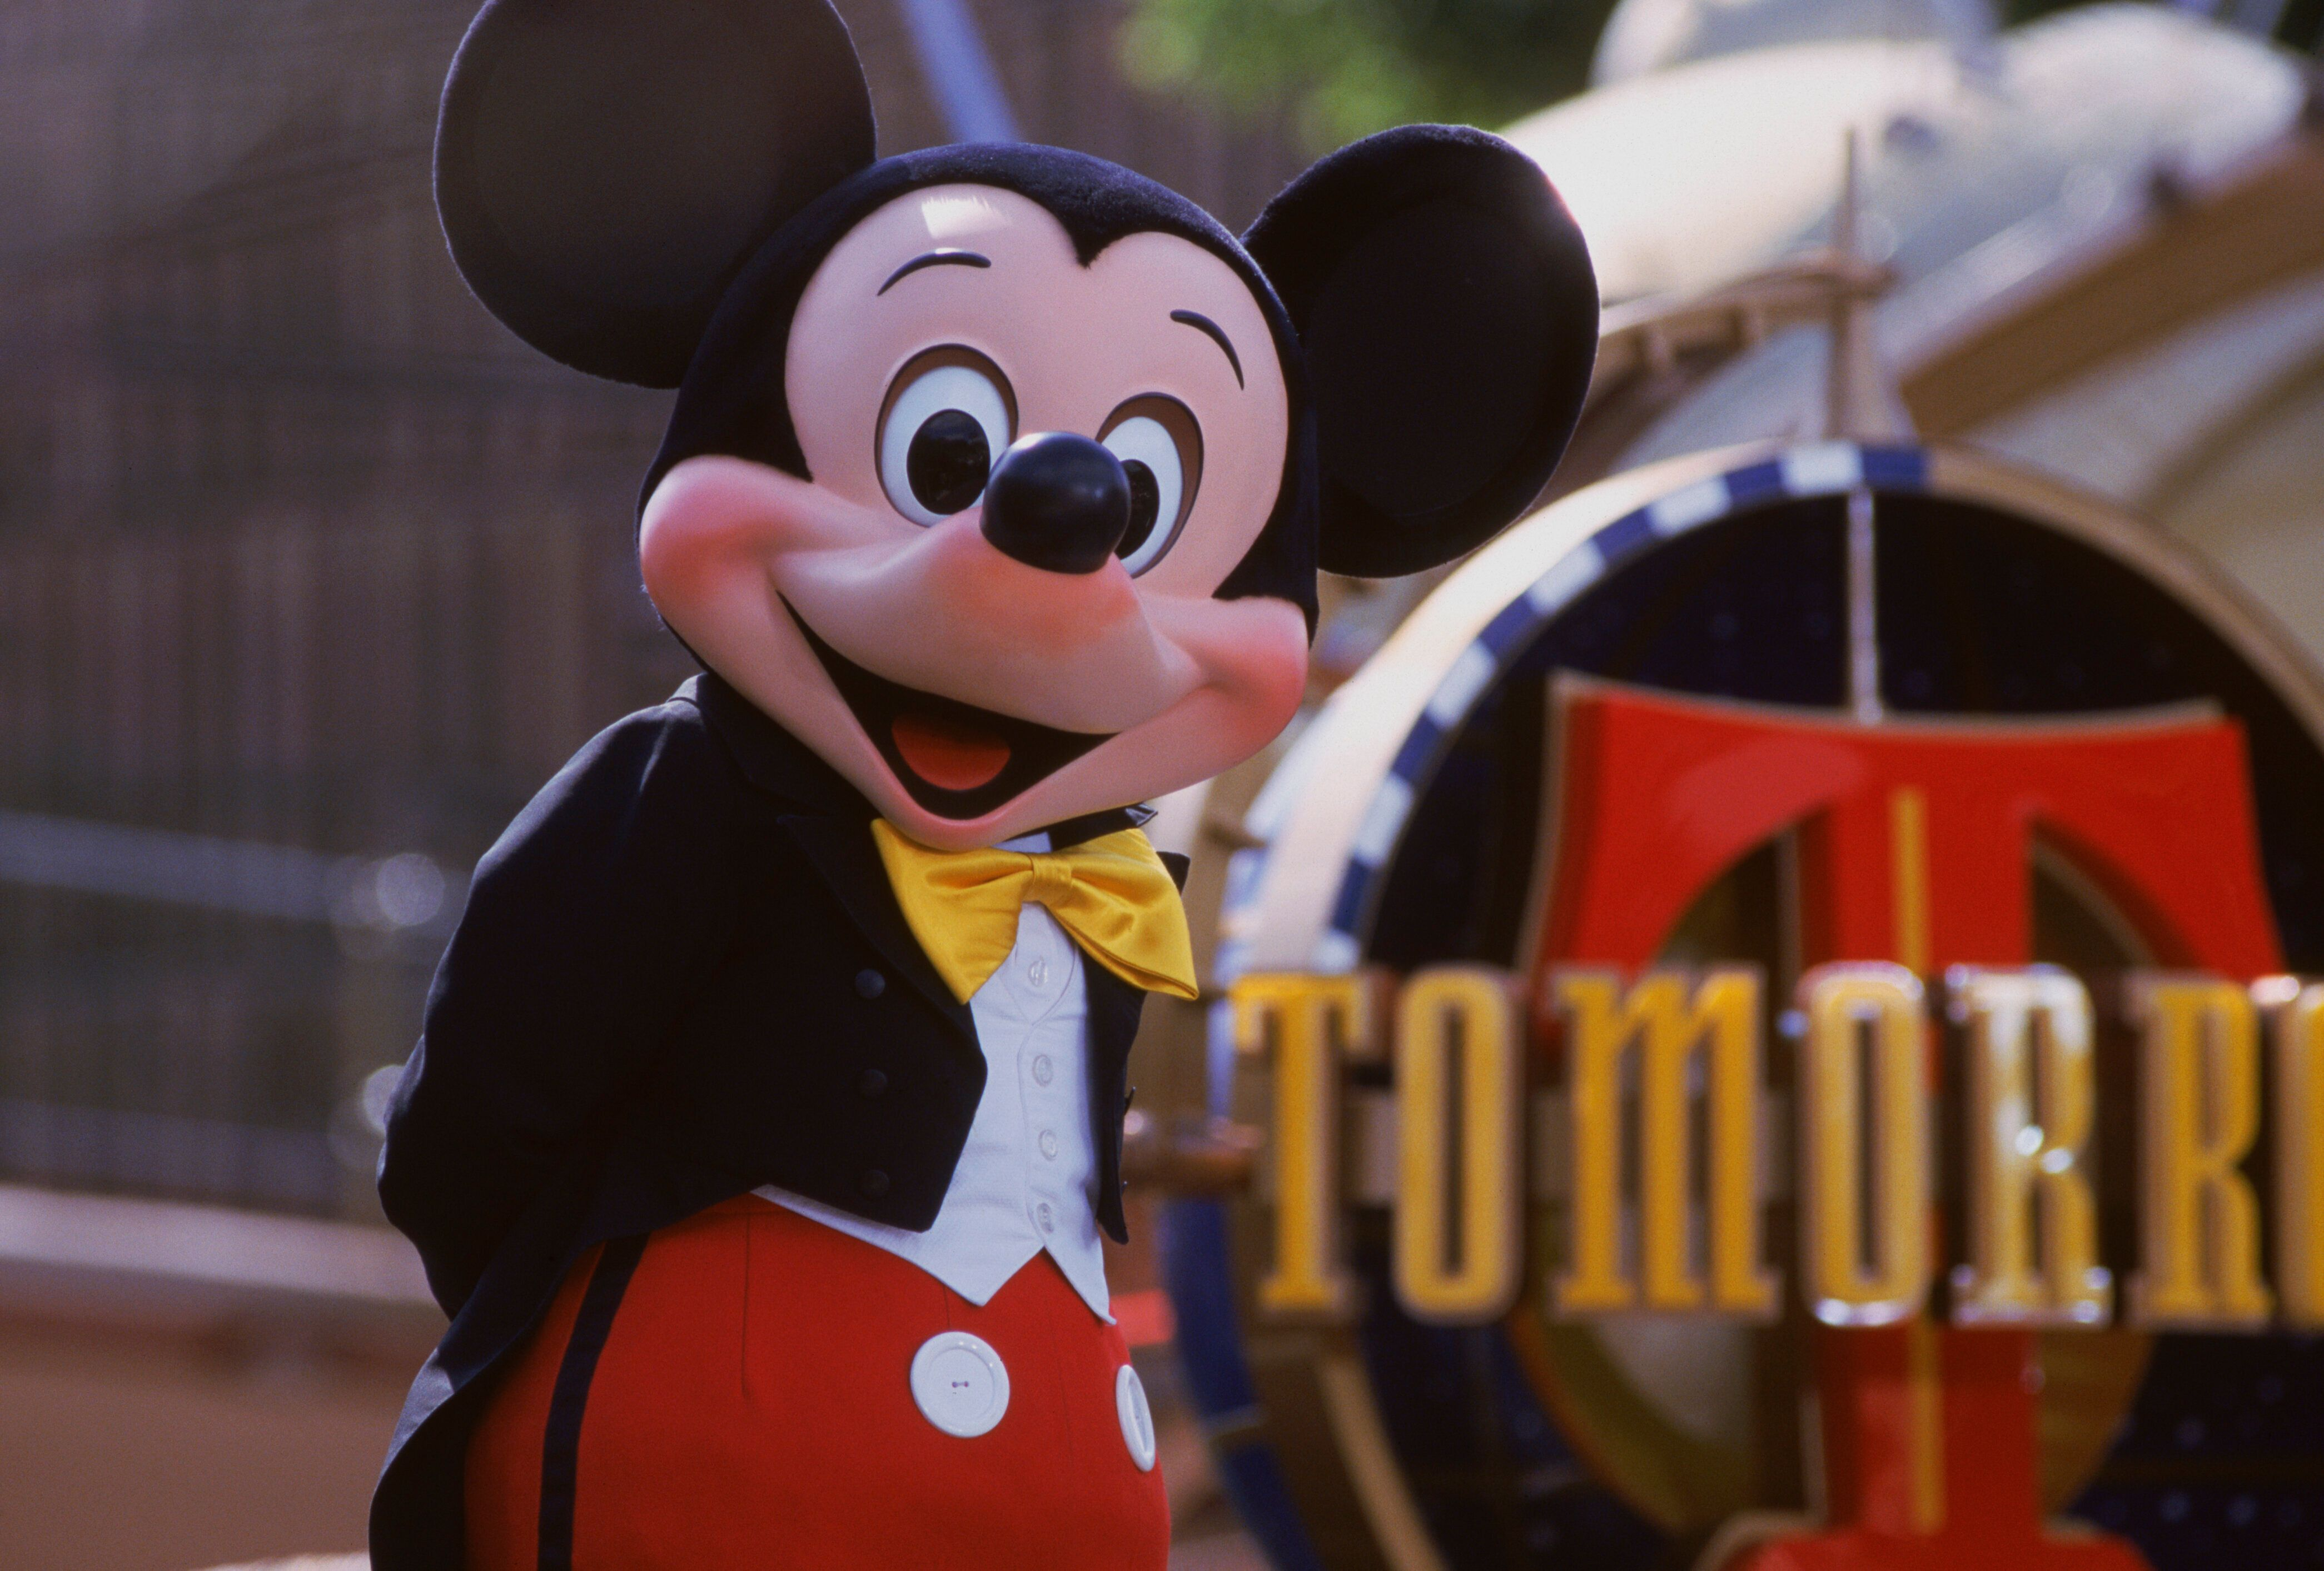 A non-robot Mickey Mouse (just a person in a costume) at Disneyland.